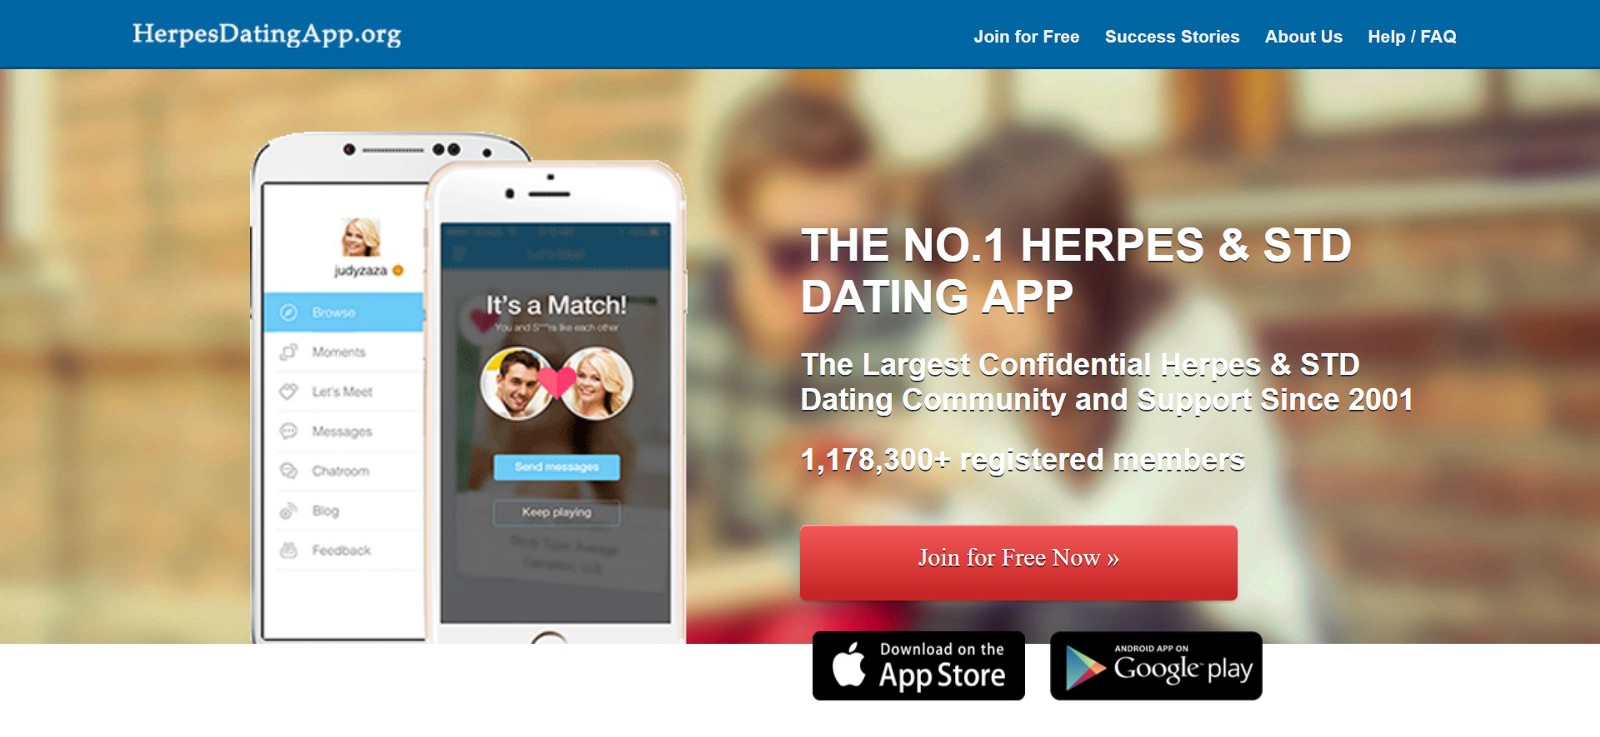 HerpesDatingApp Is The Best herpes Dating App In The World